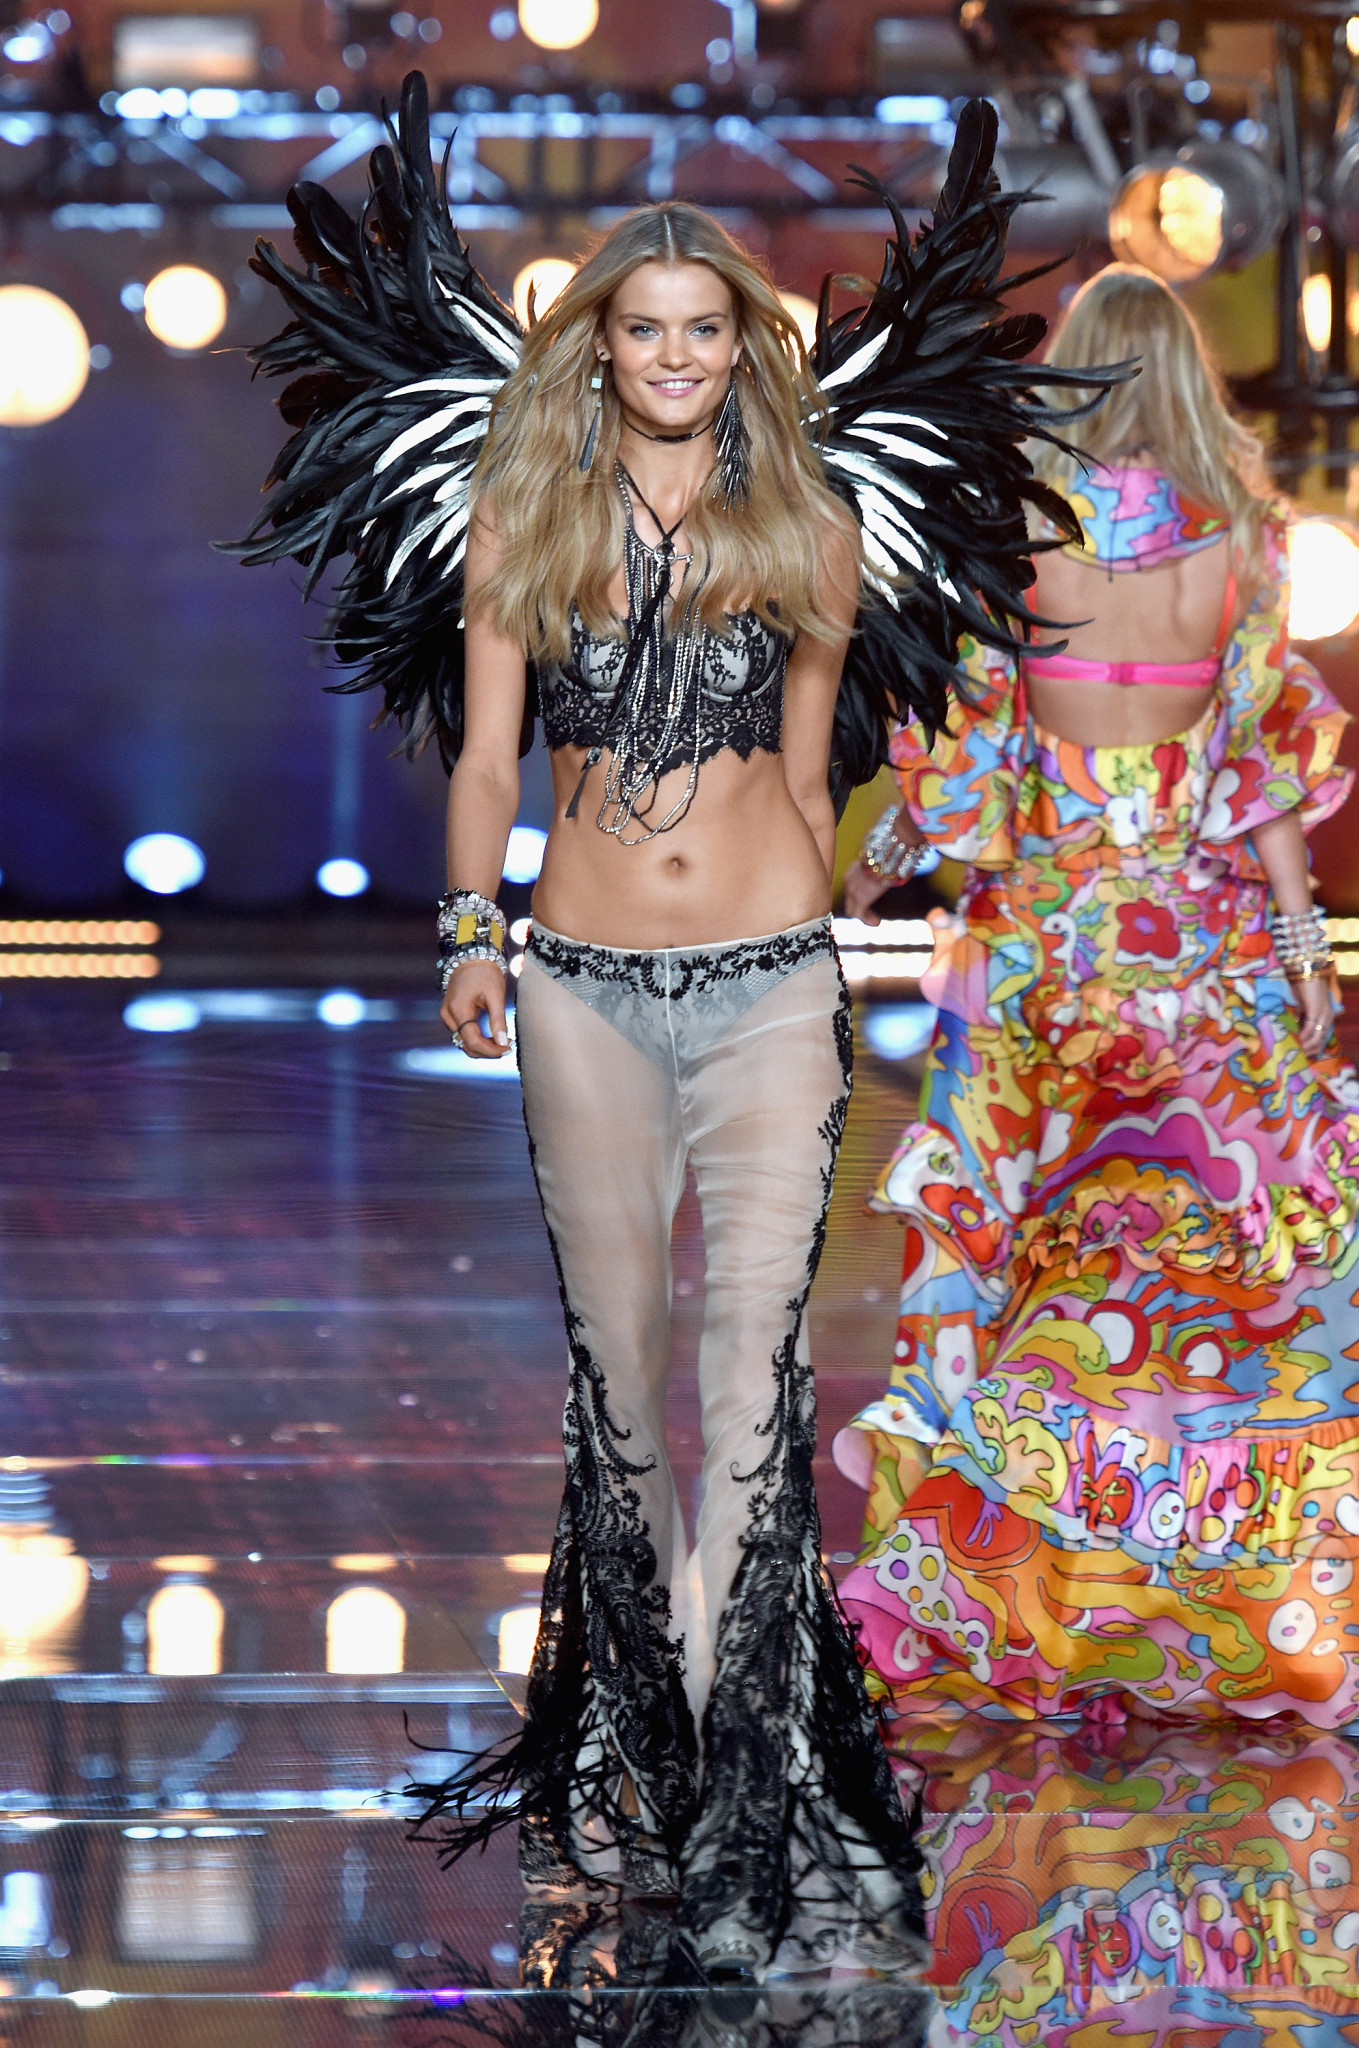 fashion-show-runway-2015-boho-psychadelic-kate-look-14-victorias-secret-hi-res